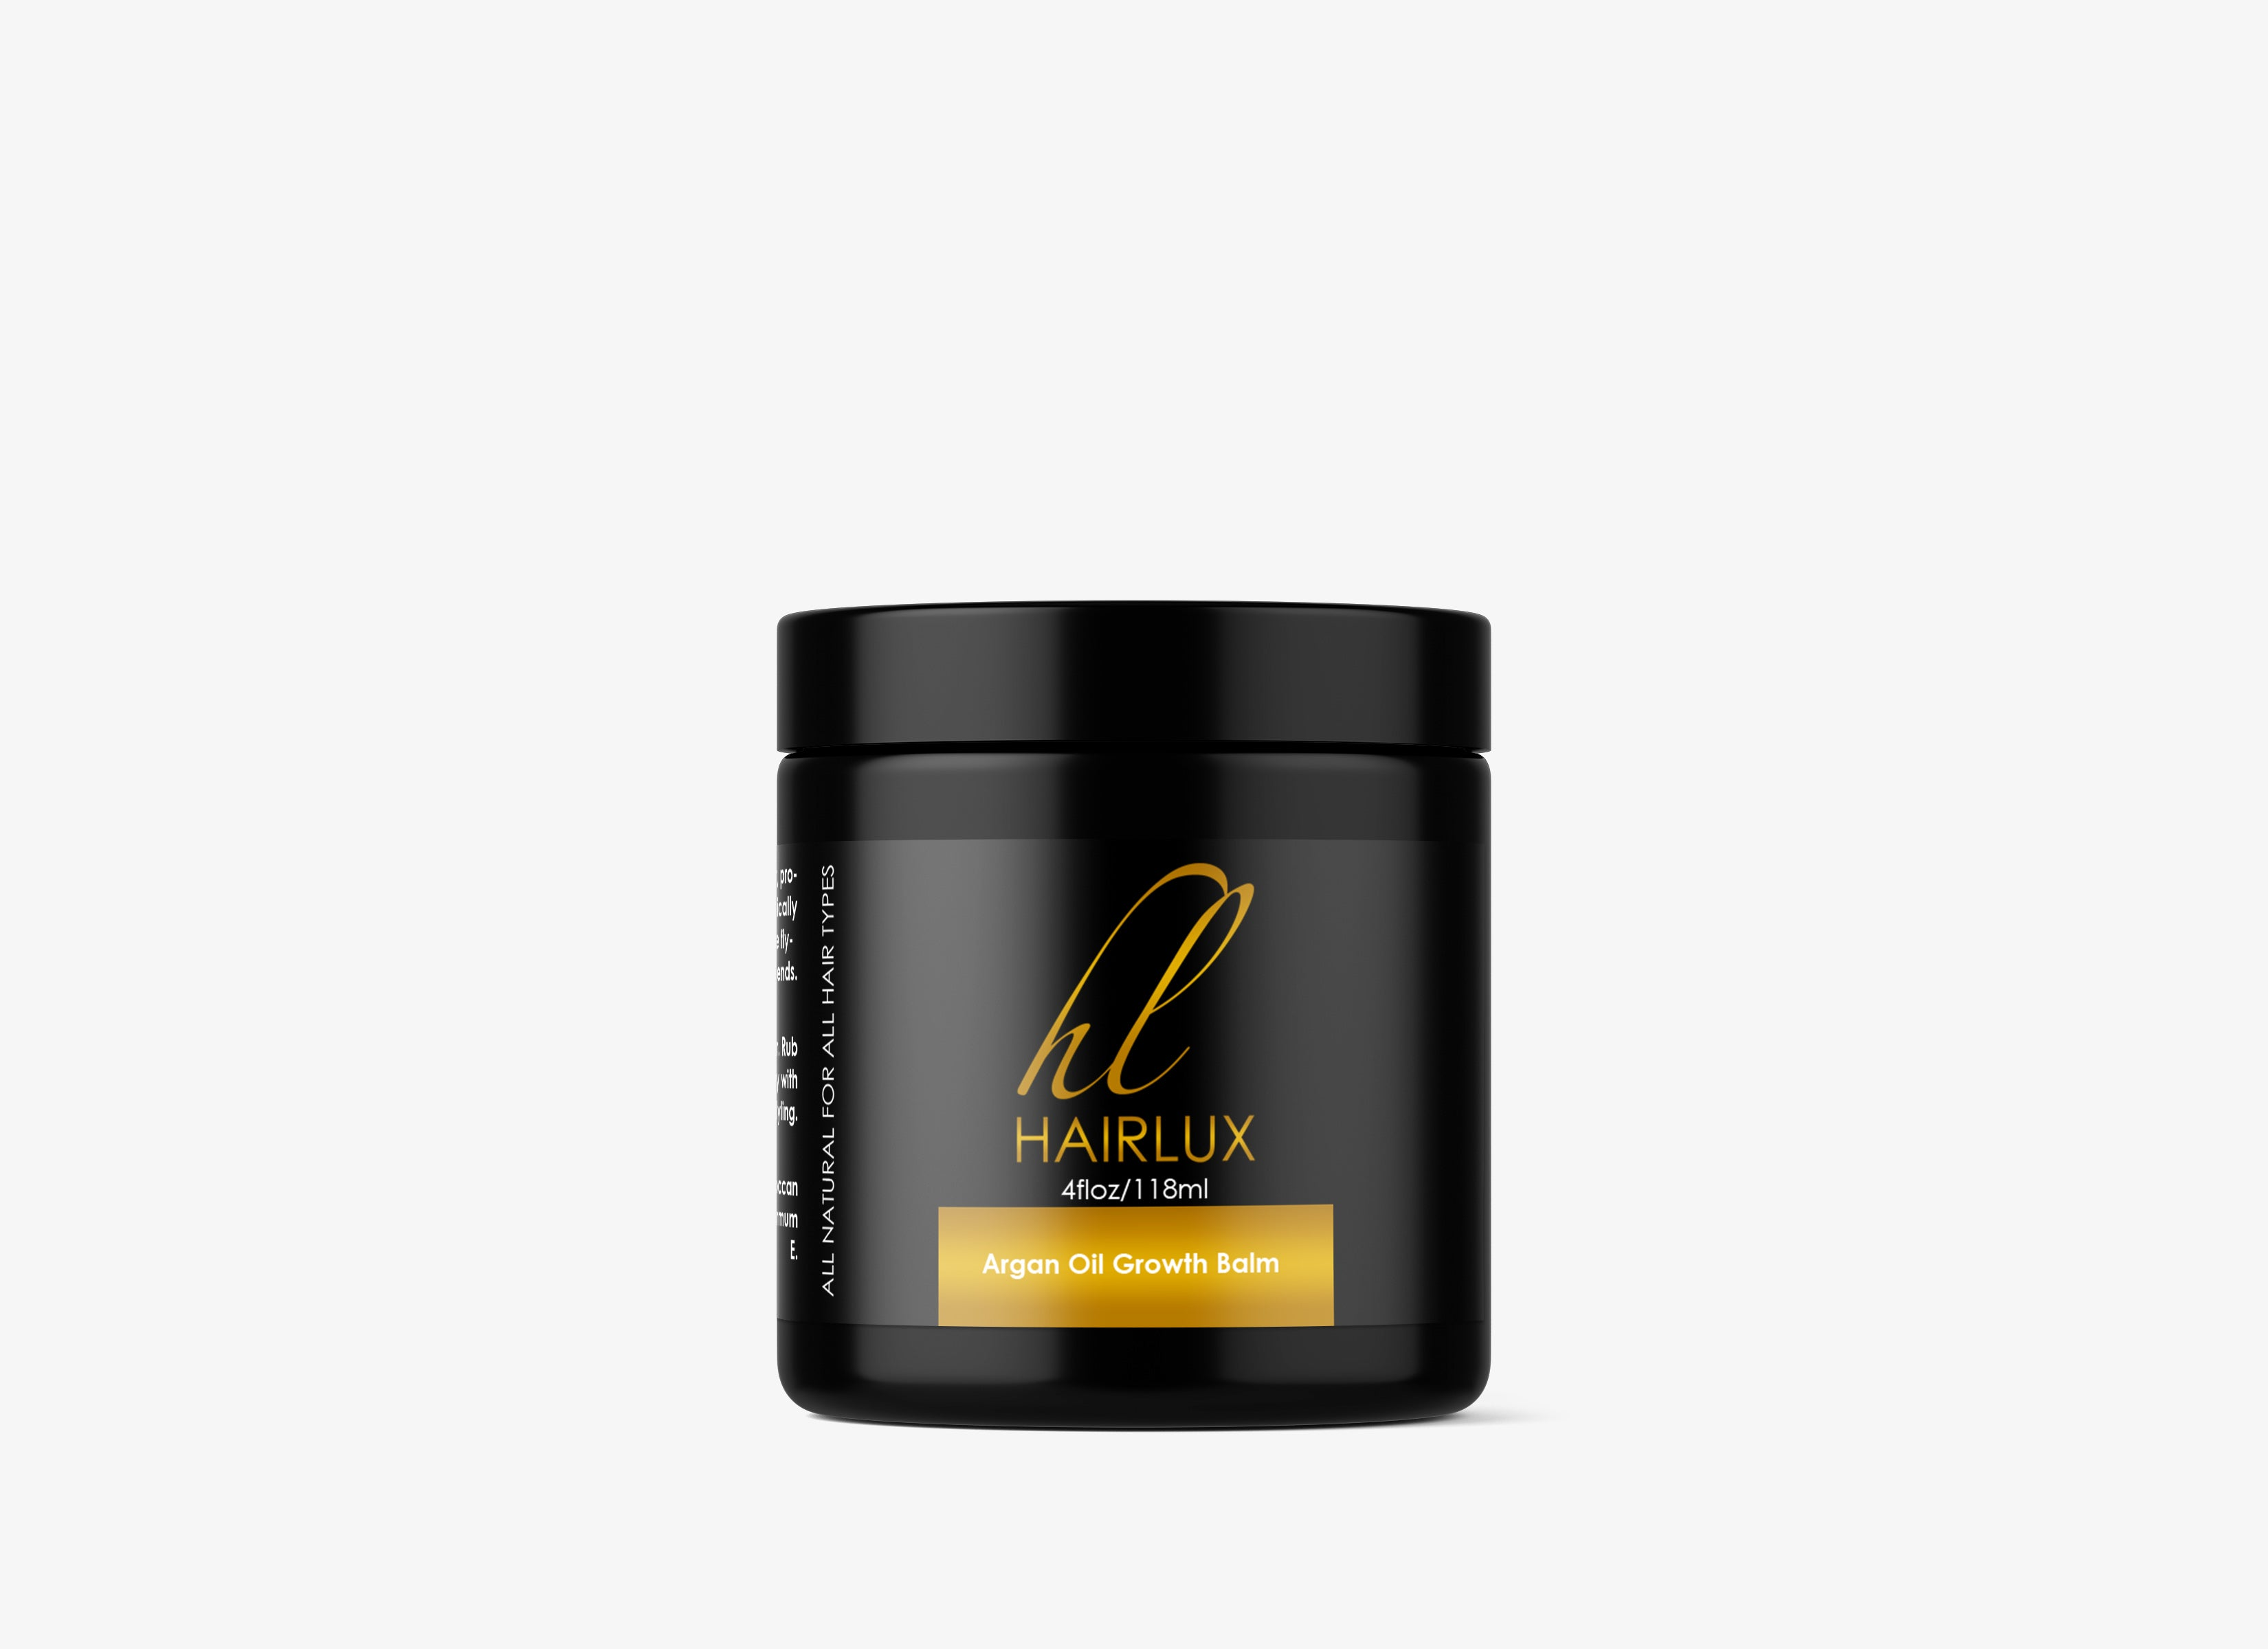 Argan Oil Growth Balm